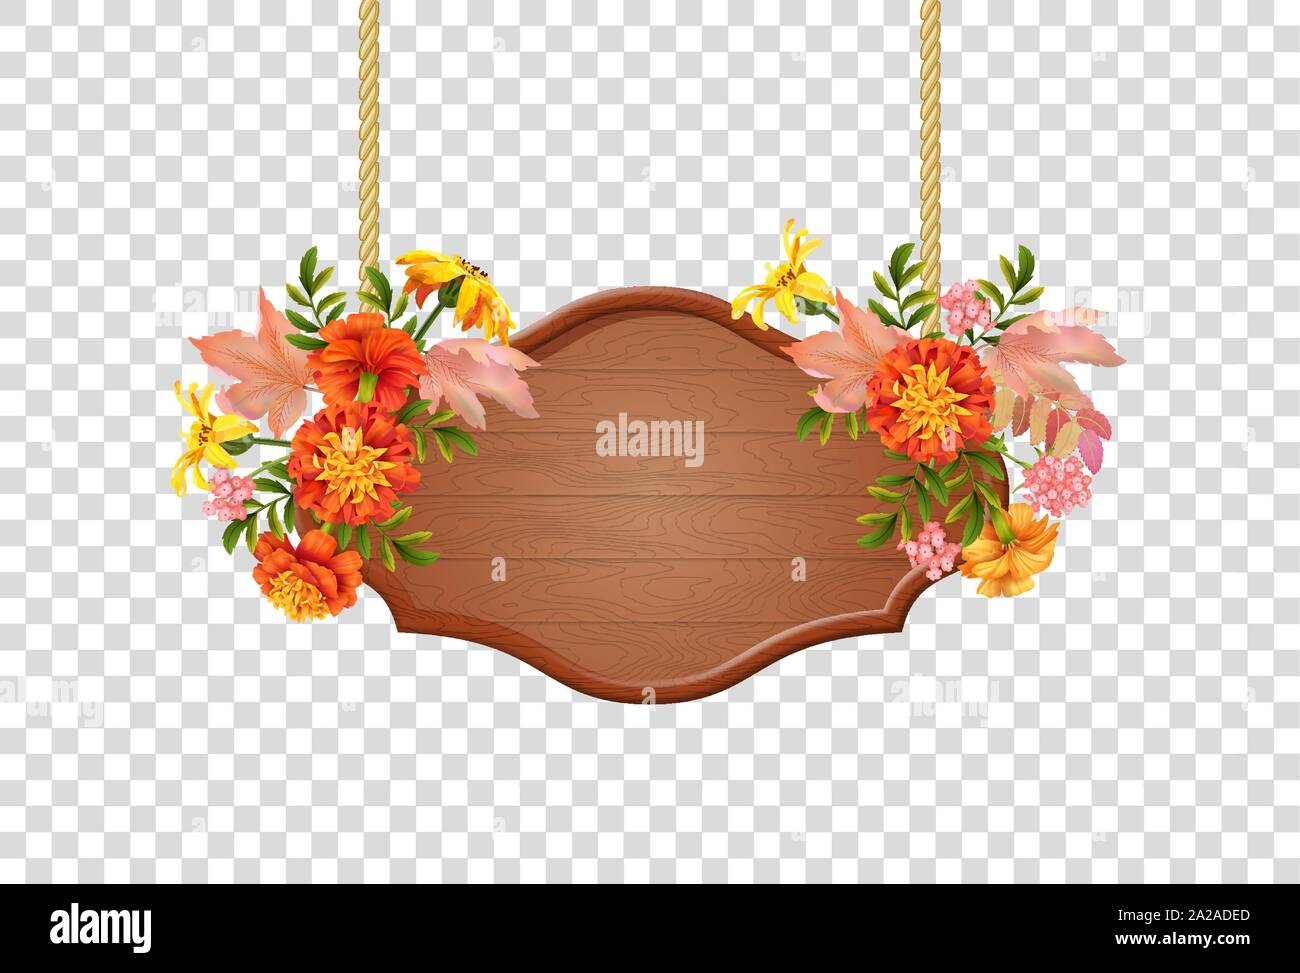 Vector hanging sign with floral bouquet. Wooden singboard hanging on ropes with autumn flowers and leaves Stock Vector